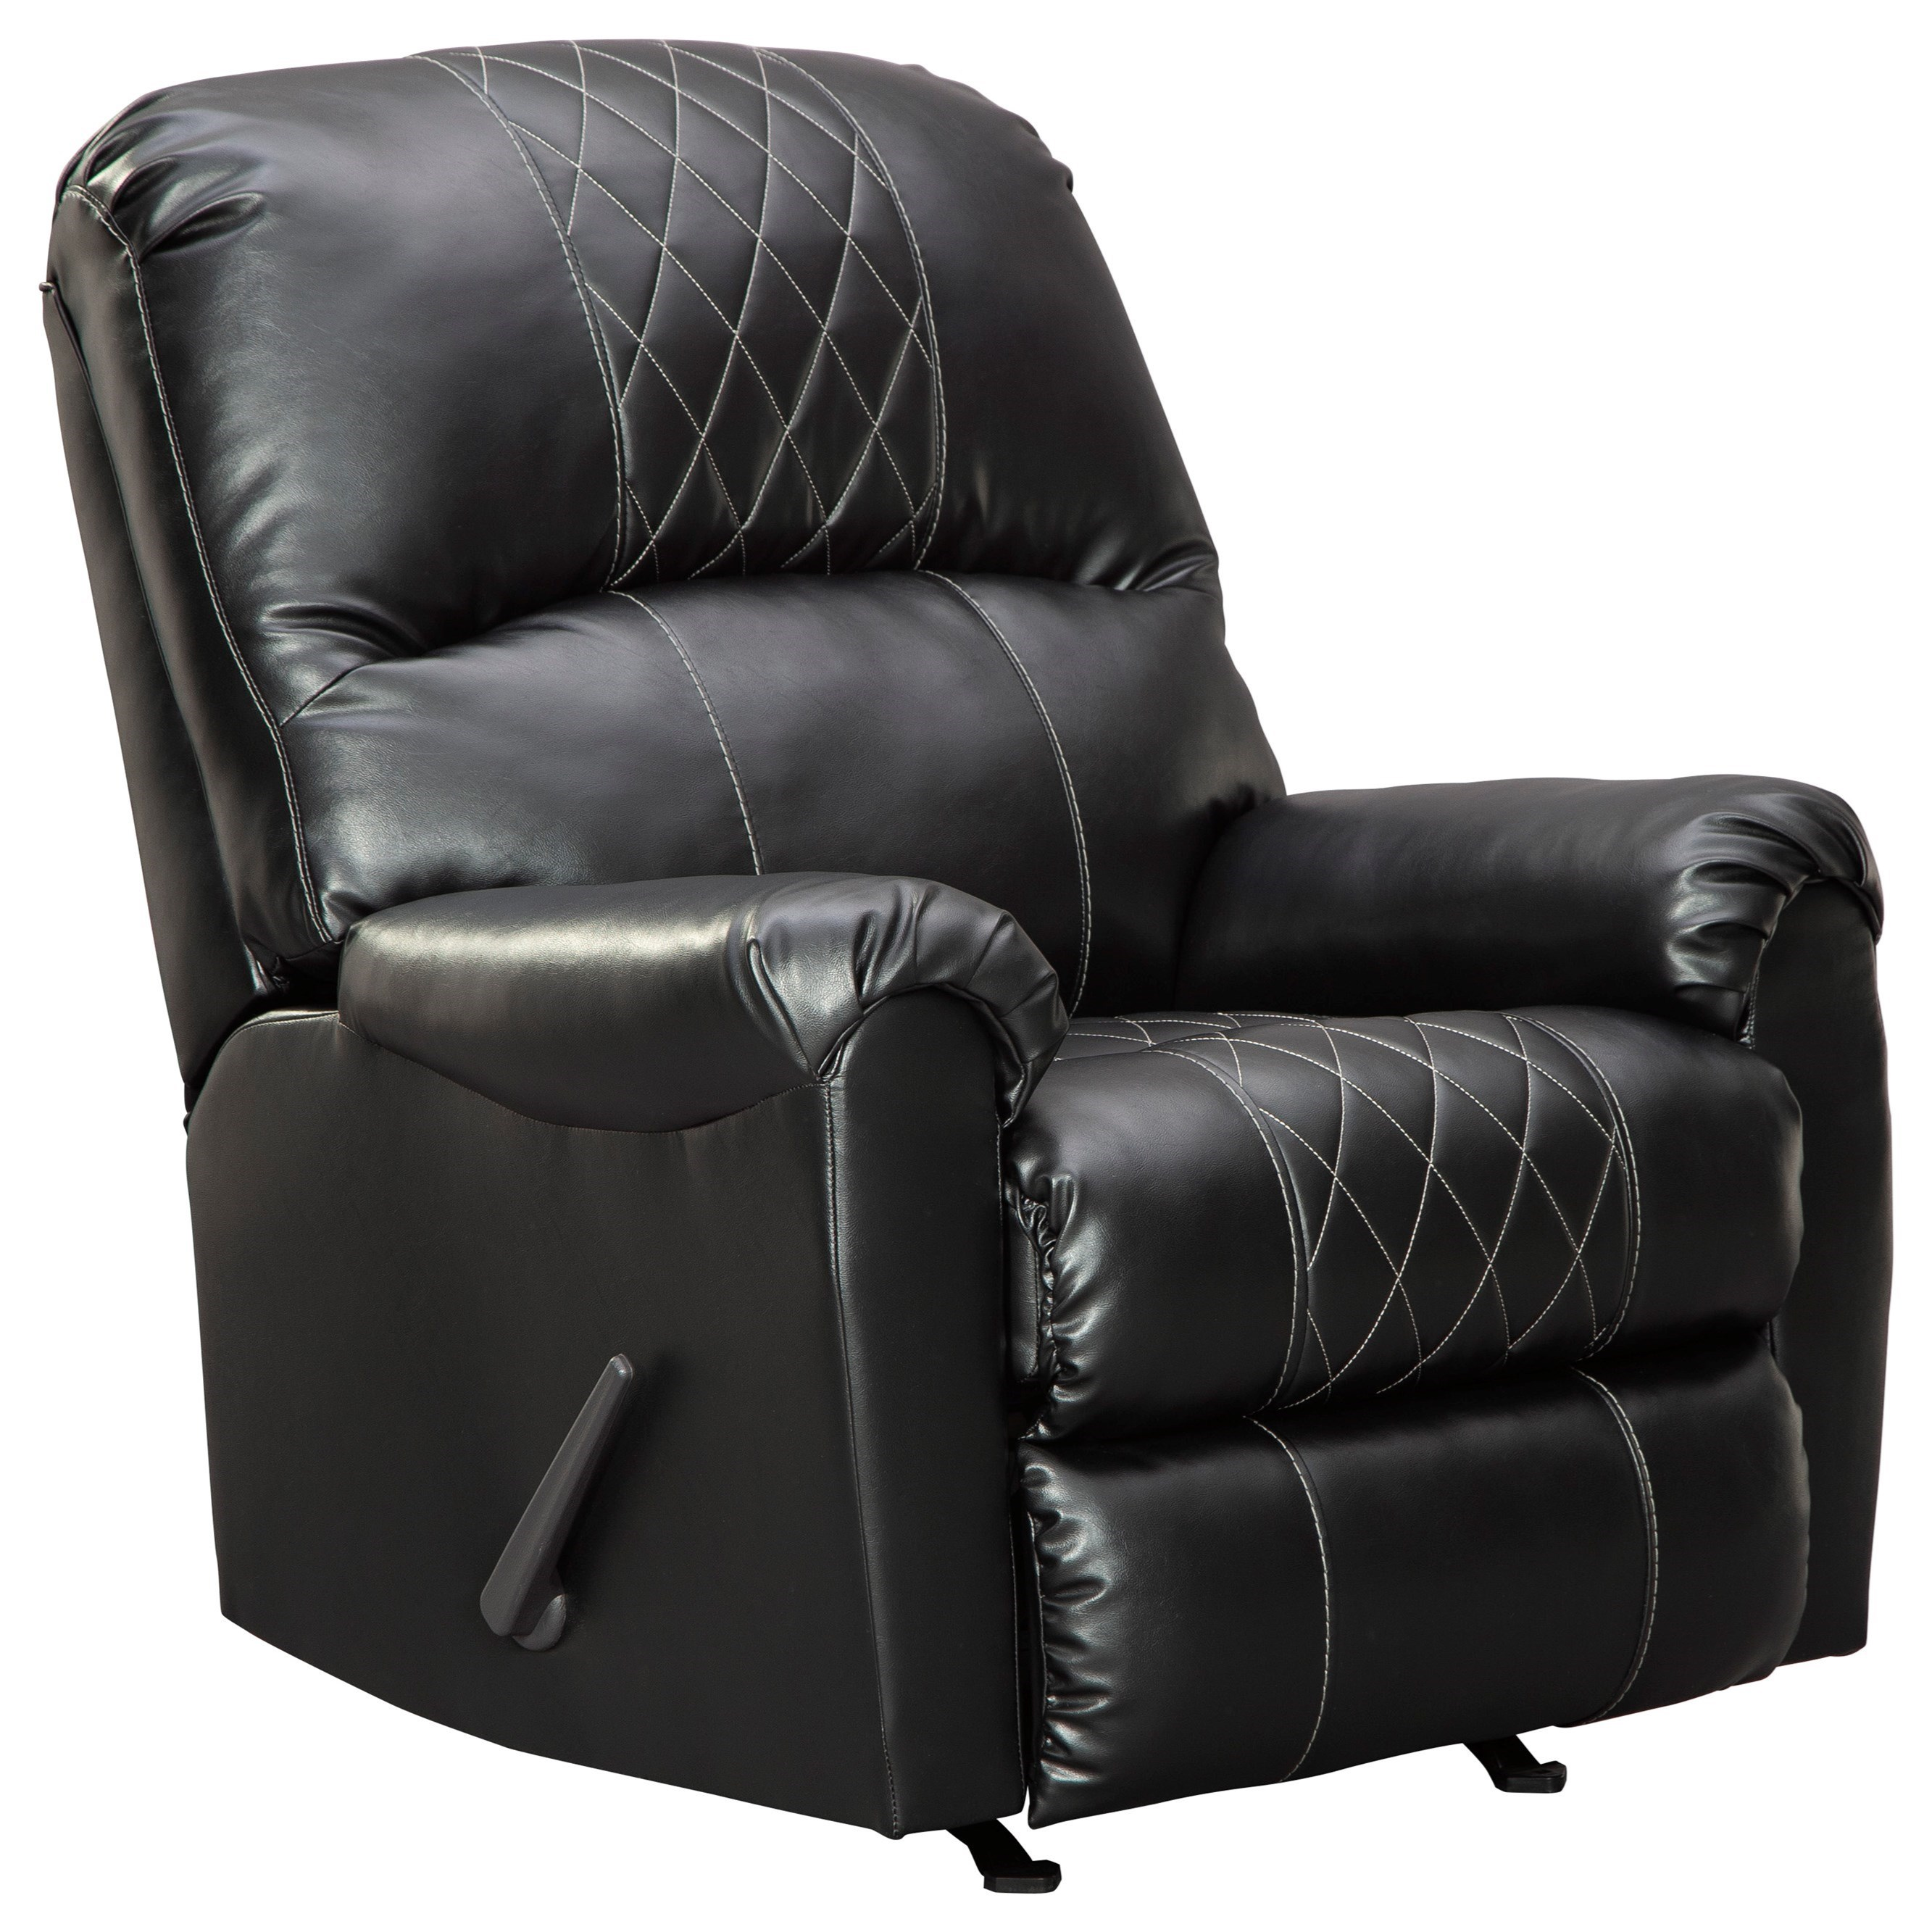 Betrillo Rocker Recliner by Signature Design by Ashley at Nassau Furniture and Mattress